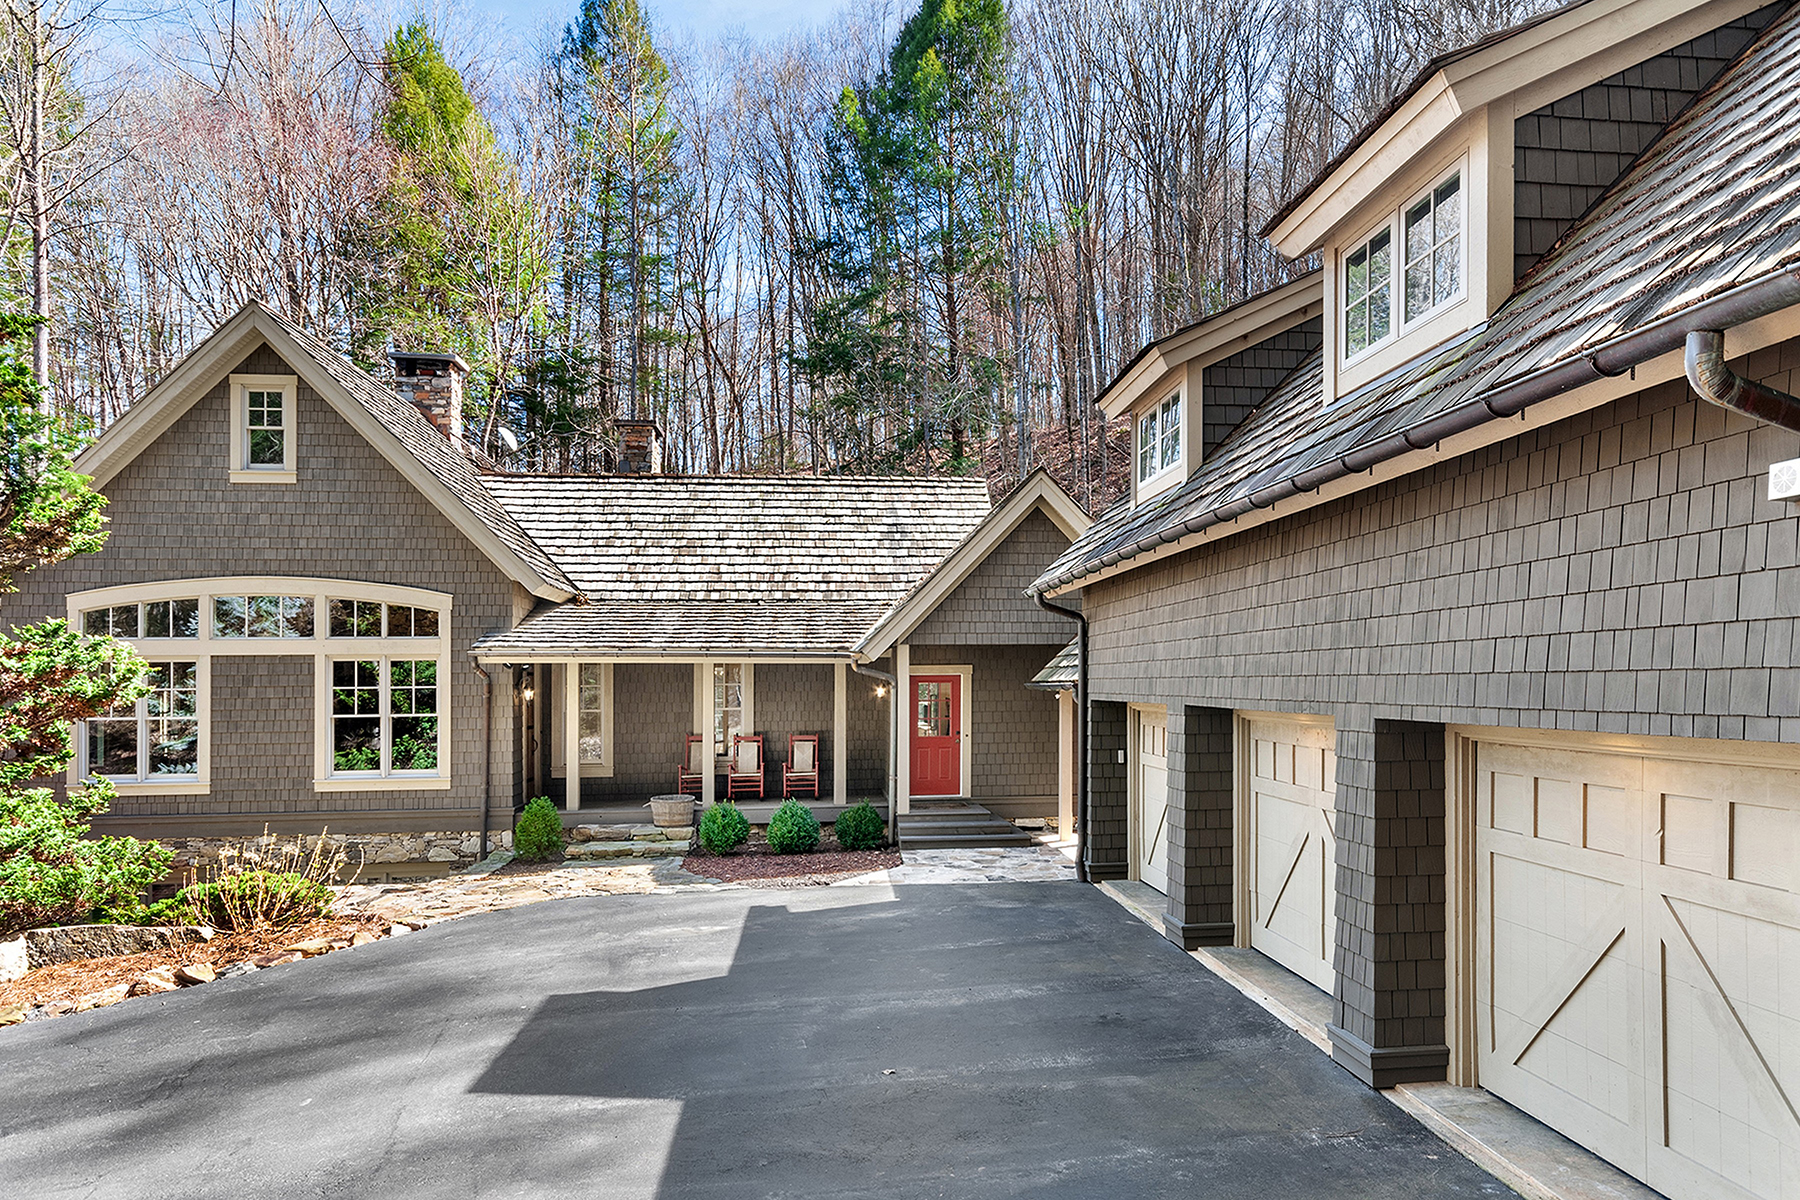 Single Family Homes for Active at WHITTIER 2323 Barkers Creek Rd Whittier, North Carolina 28789 United States